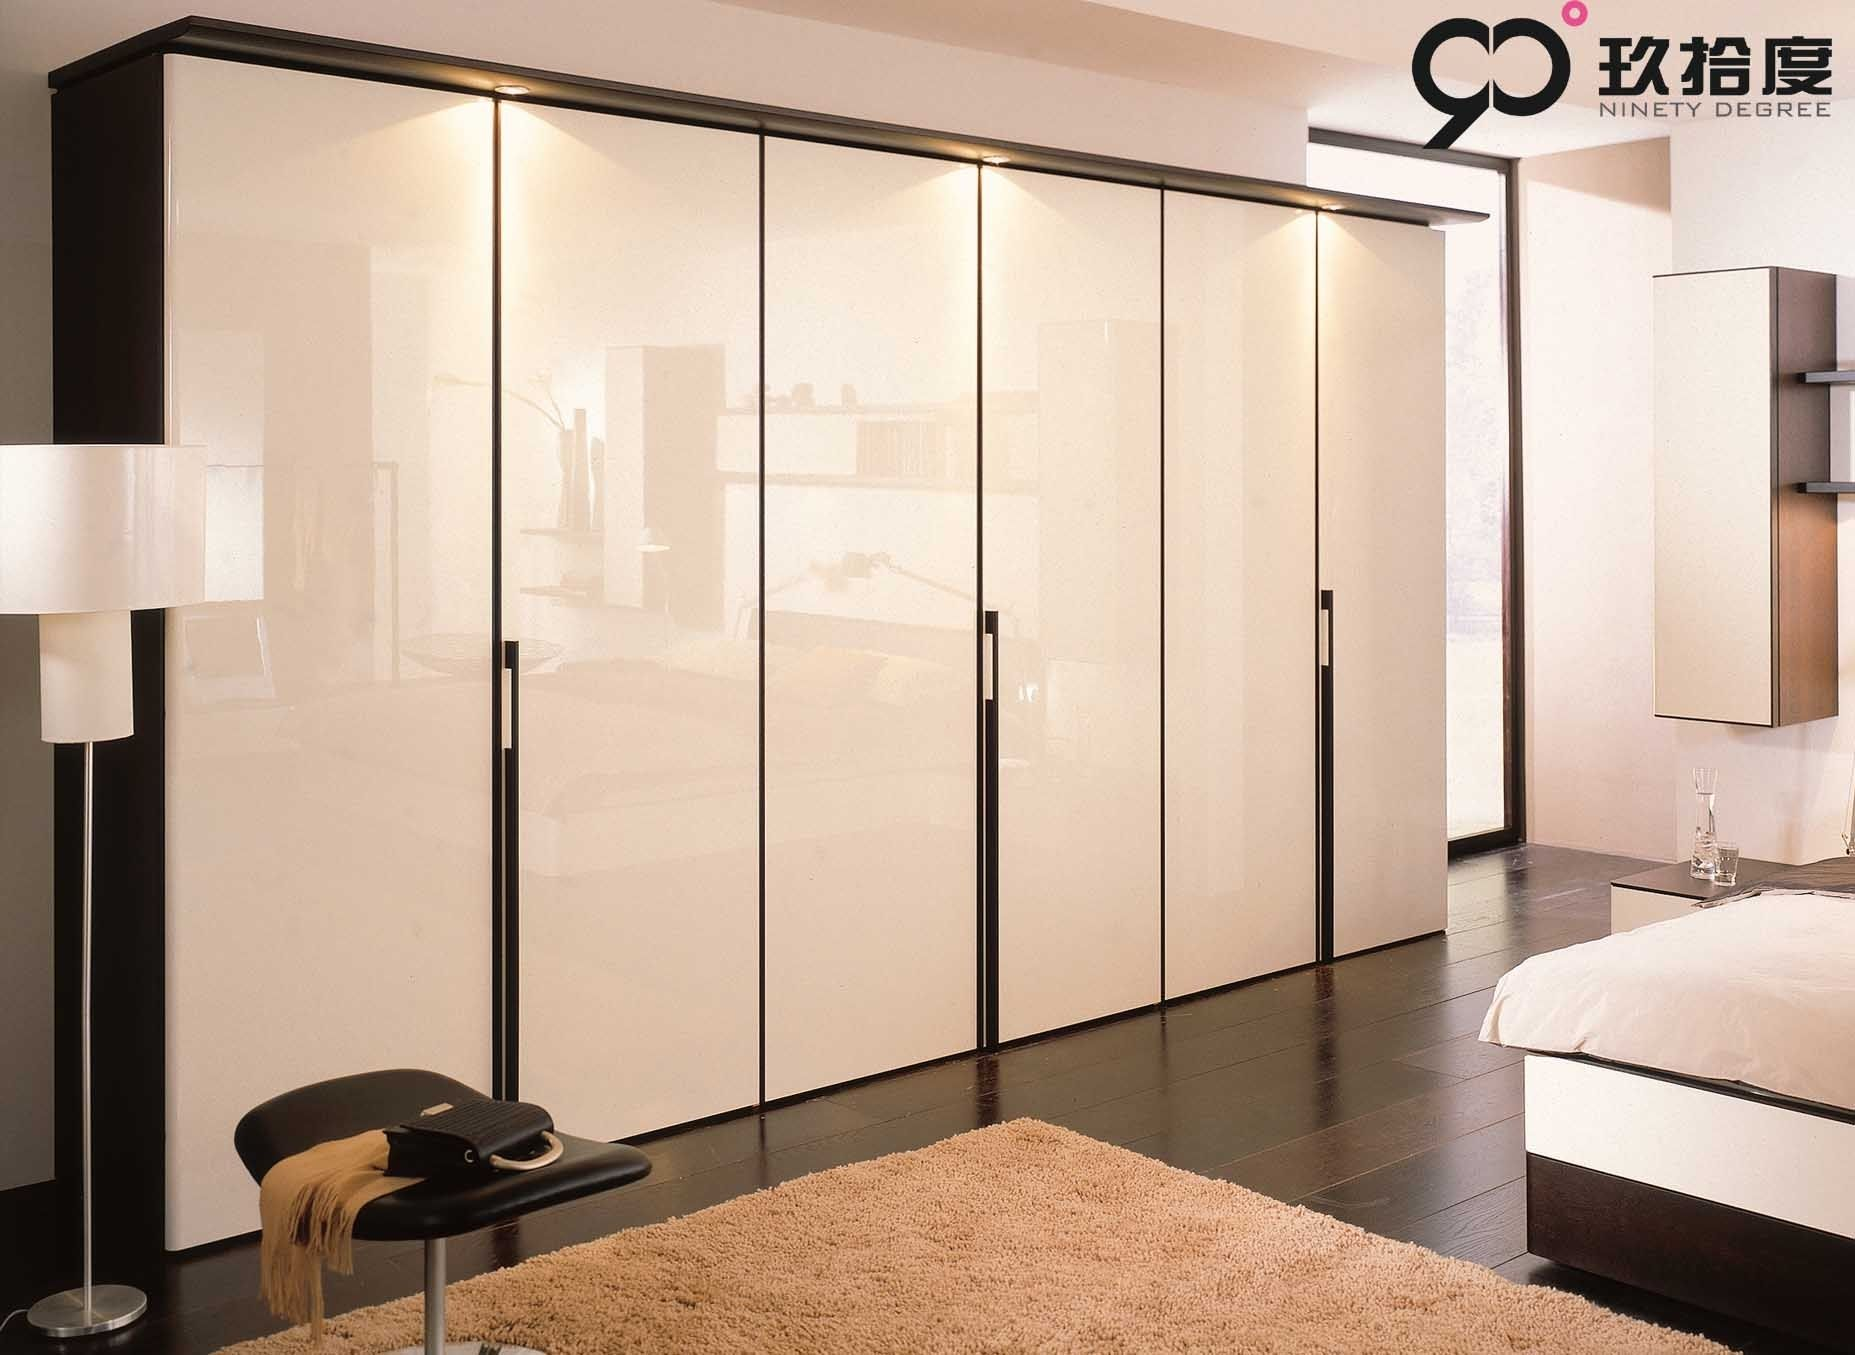 Bedroom Wardrobe Designs Door Designs Modern Bedroom  Google Search  Doors  Pinterest